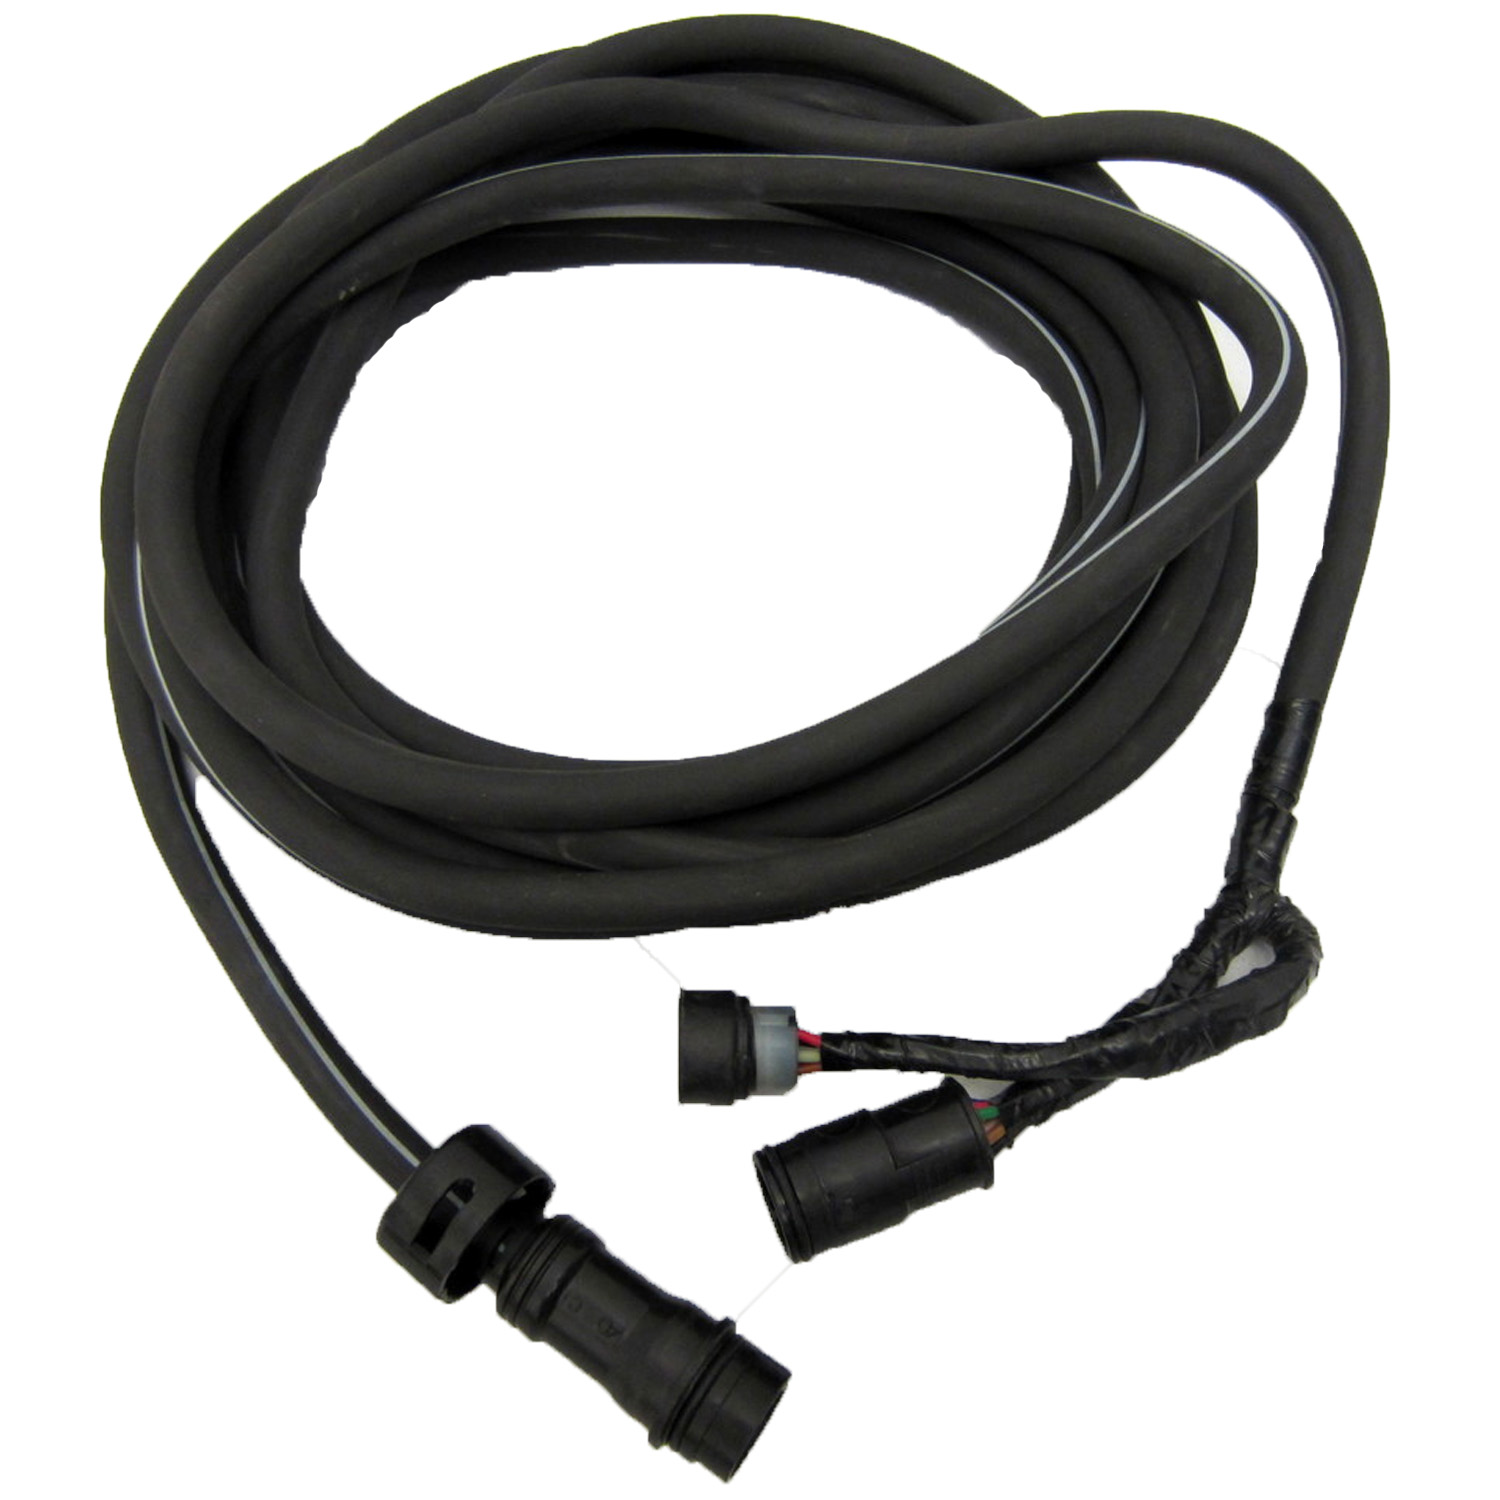 Yamaha Outboard 10 Pin 26ft Main Harness 6k1 8258a 40 00 Ebay Wiring Supplies New Oem 266ft Engine Electrical Wire